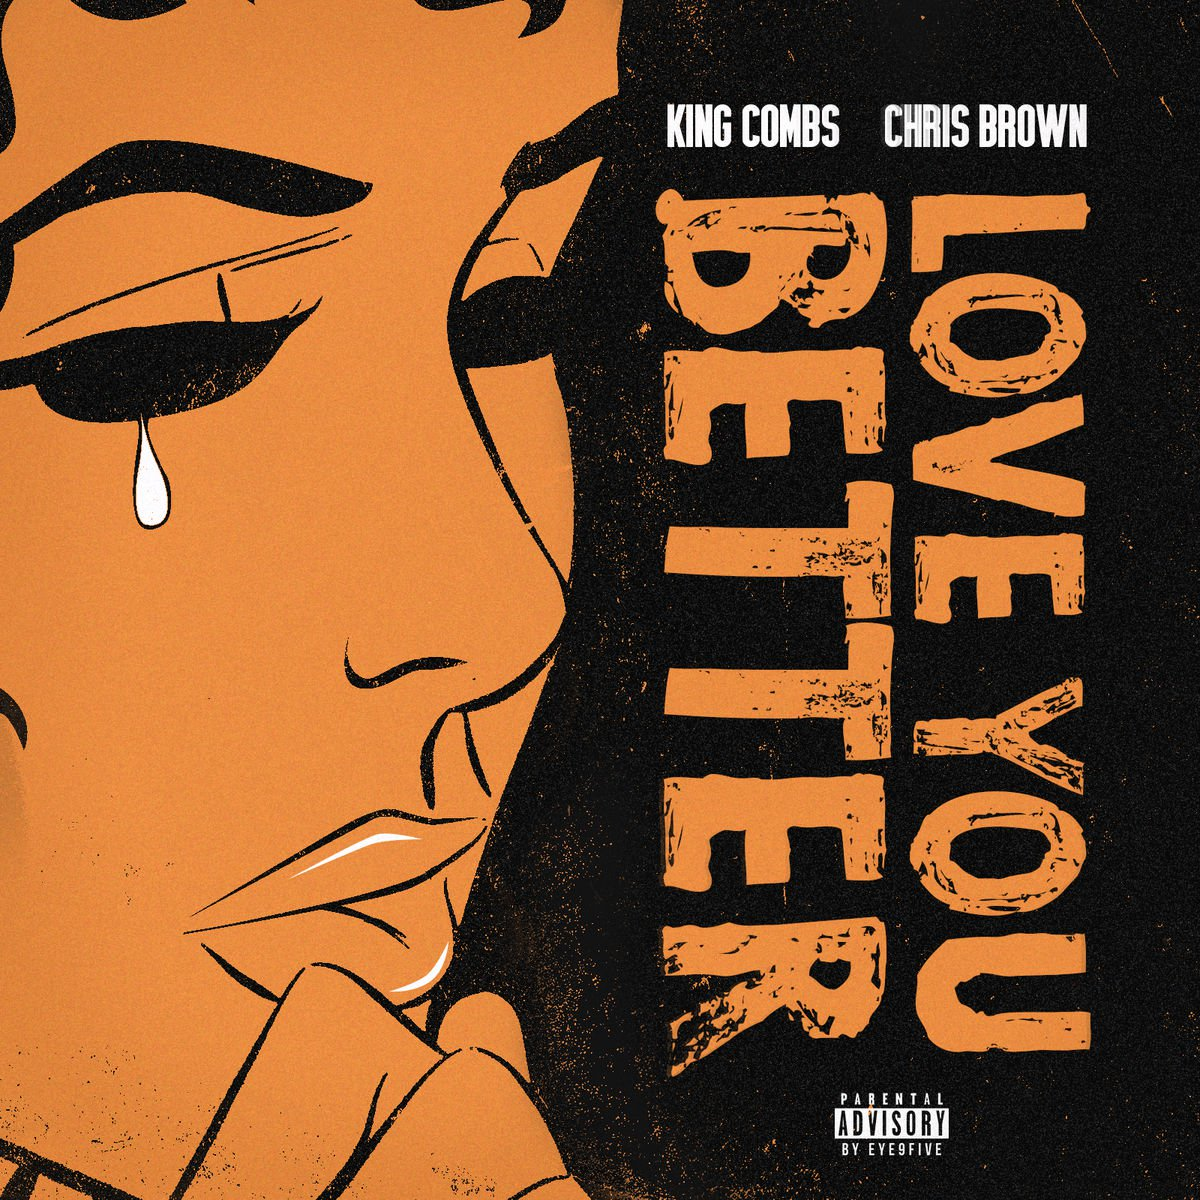 """New Music: King Combs – """"Love You Better"""" (feat. Chris Brown)"""